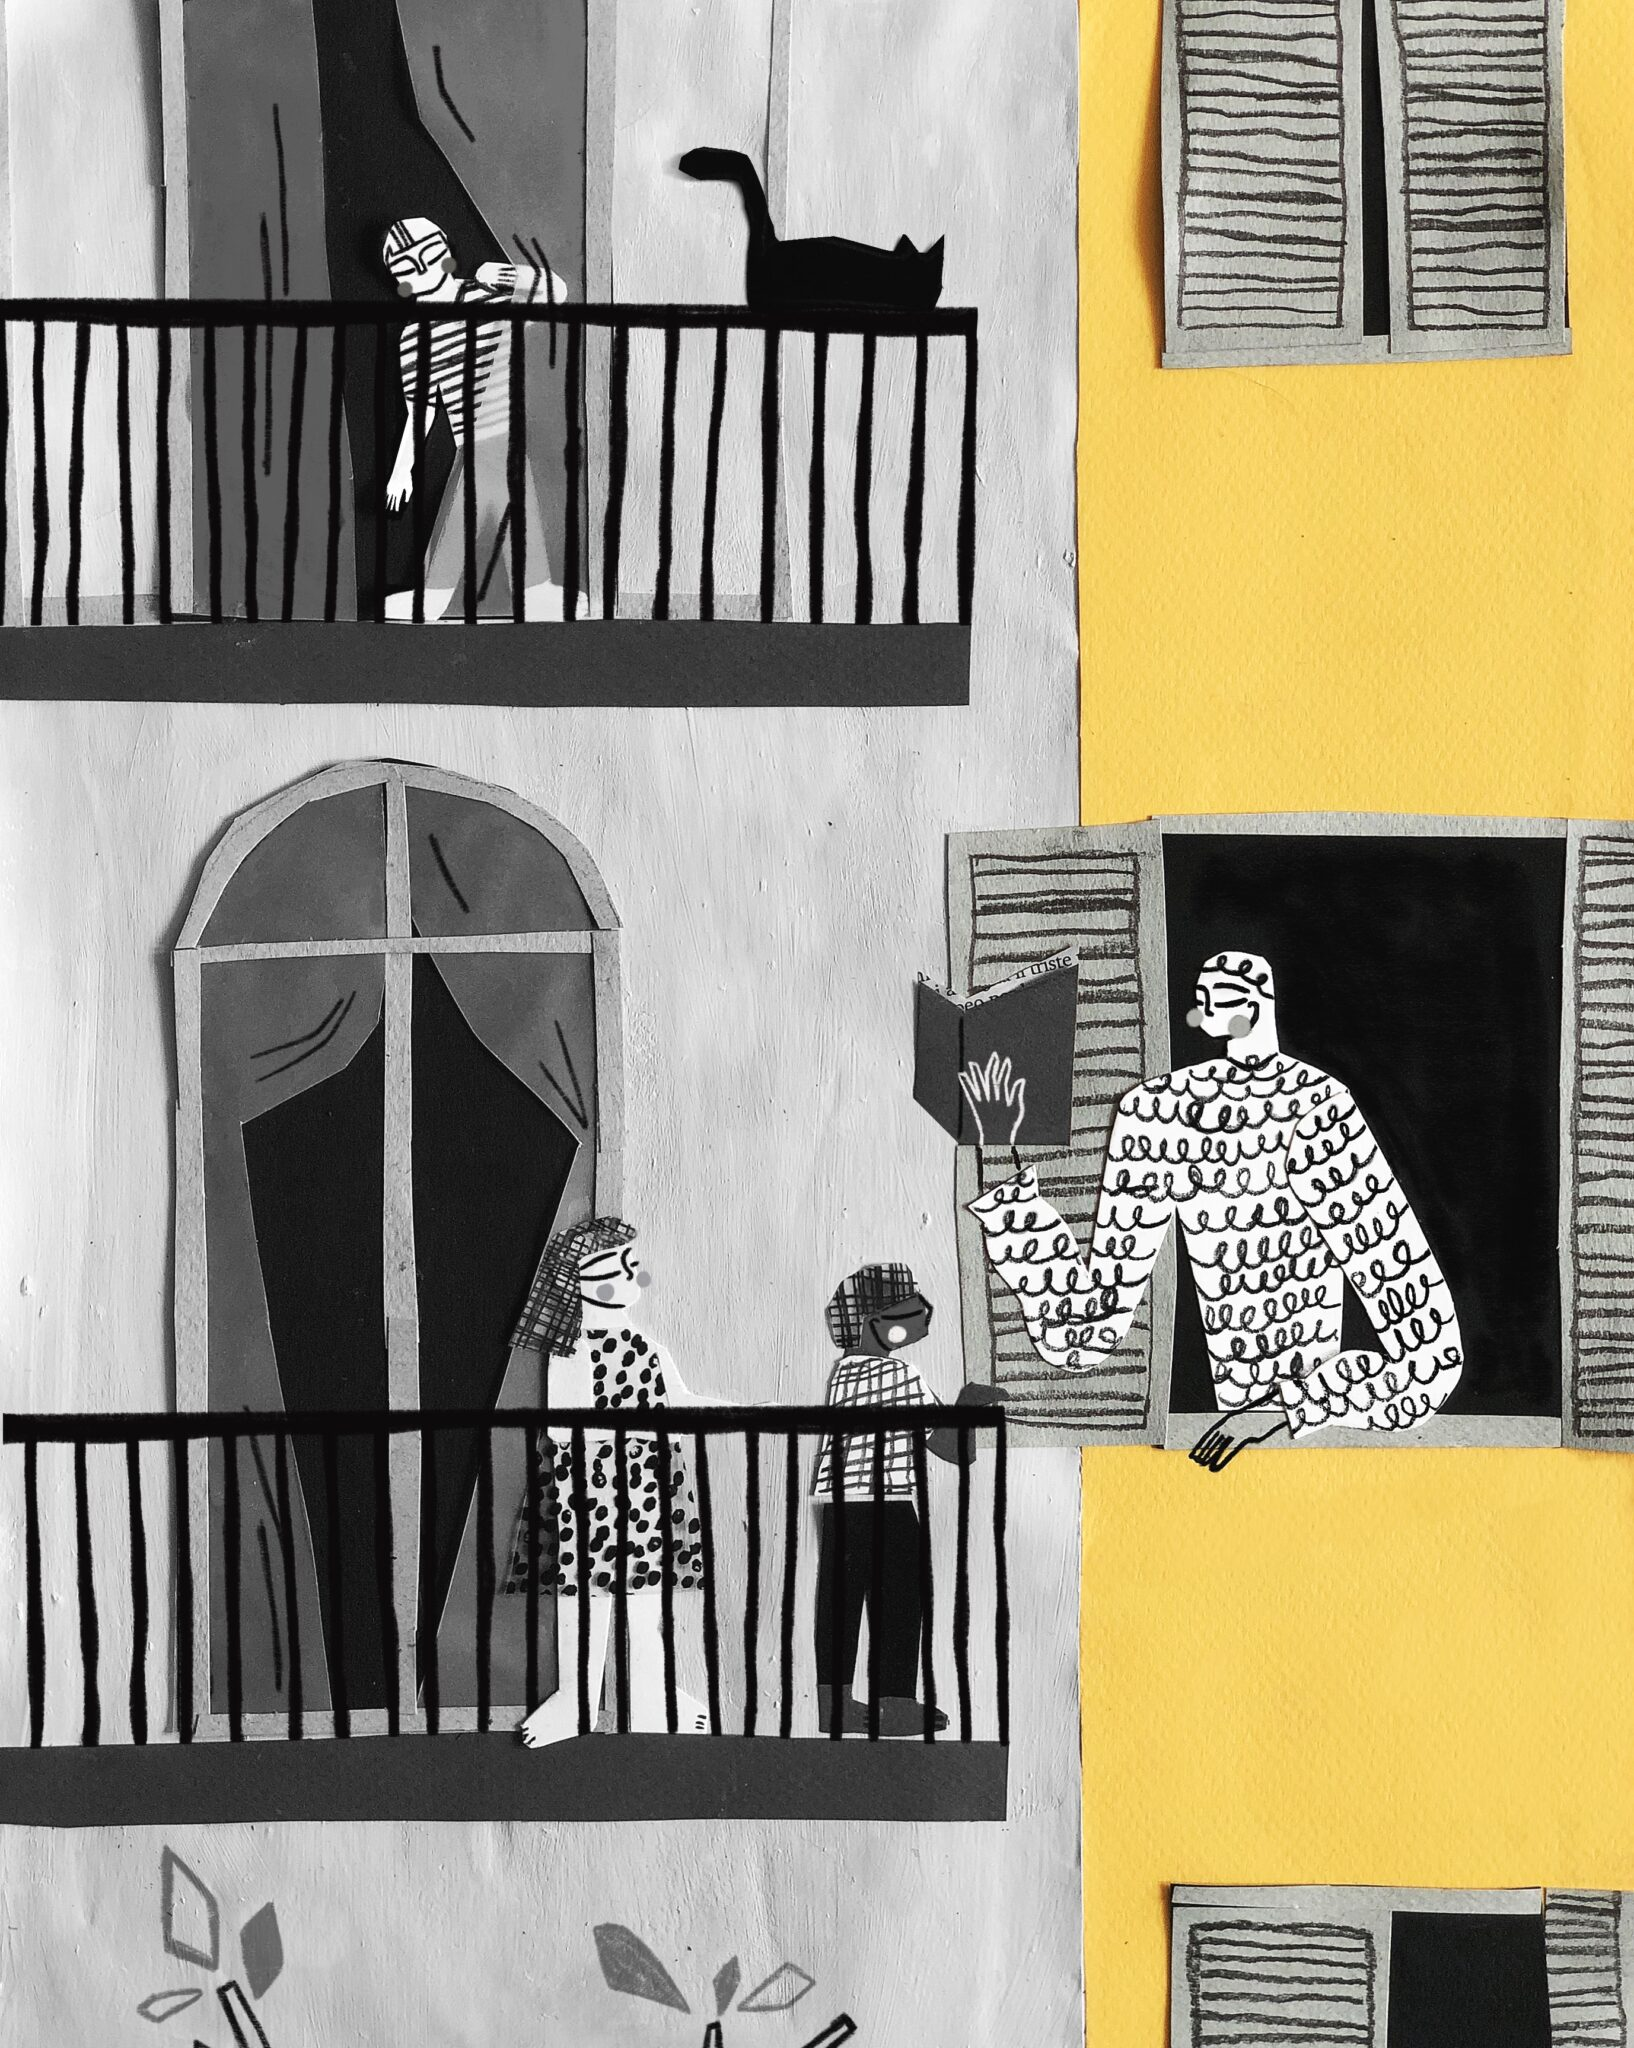 drawn image of neighbors - adult reading, children, and child and cat, on different balconies overlooking street. one building black and white; the other is painted yellow